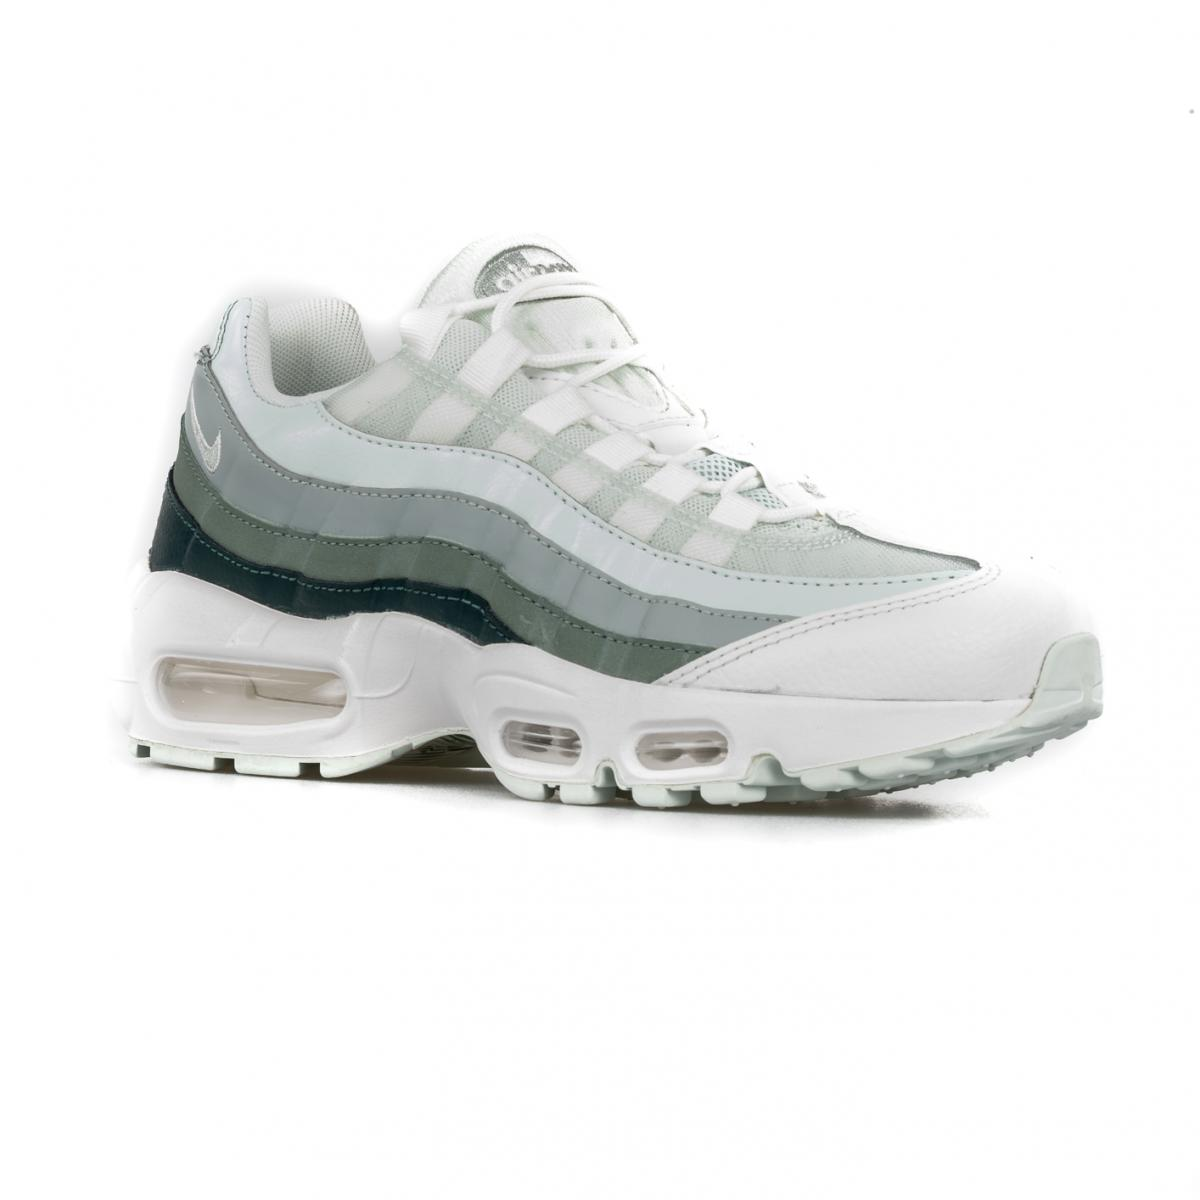 SCARPA DONNA NIKE AIR MAX 95 307960 013 BARLEY GREY/LIGHT PUMICE